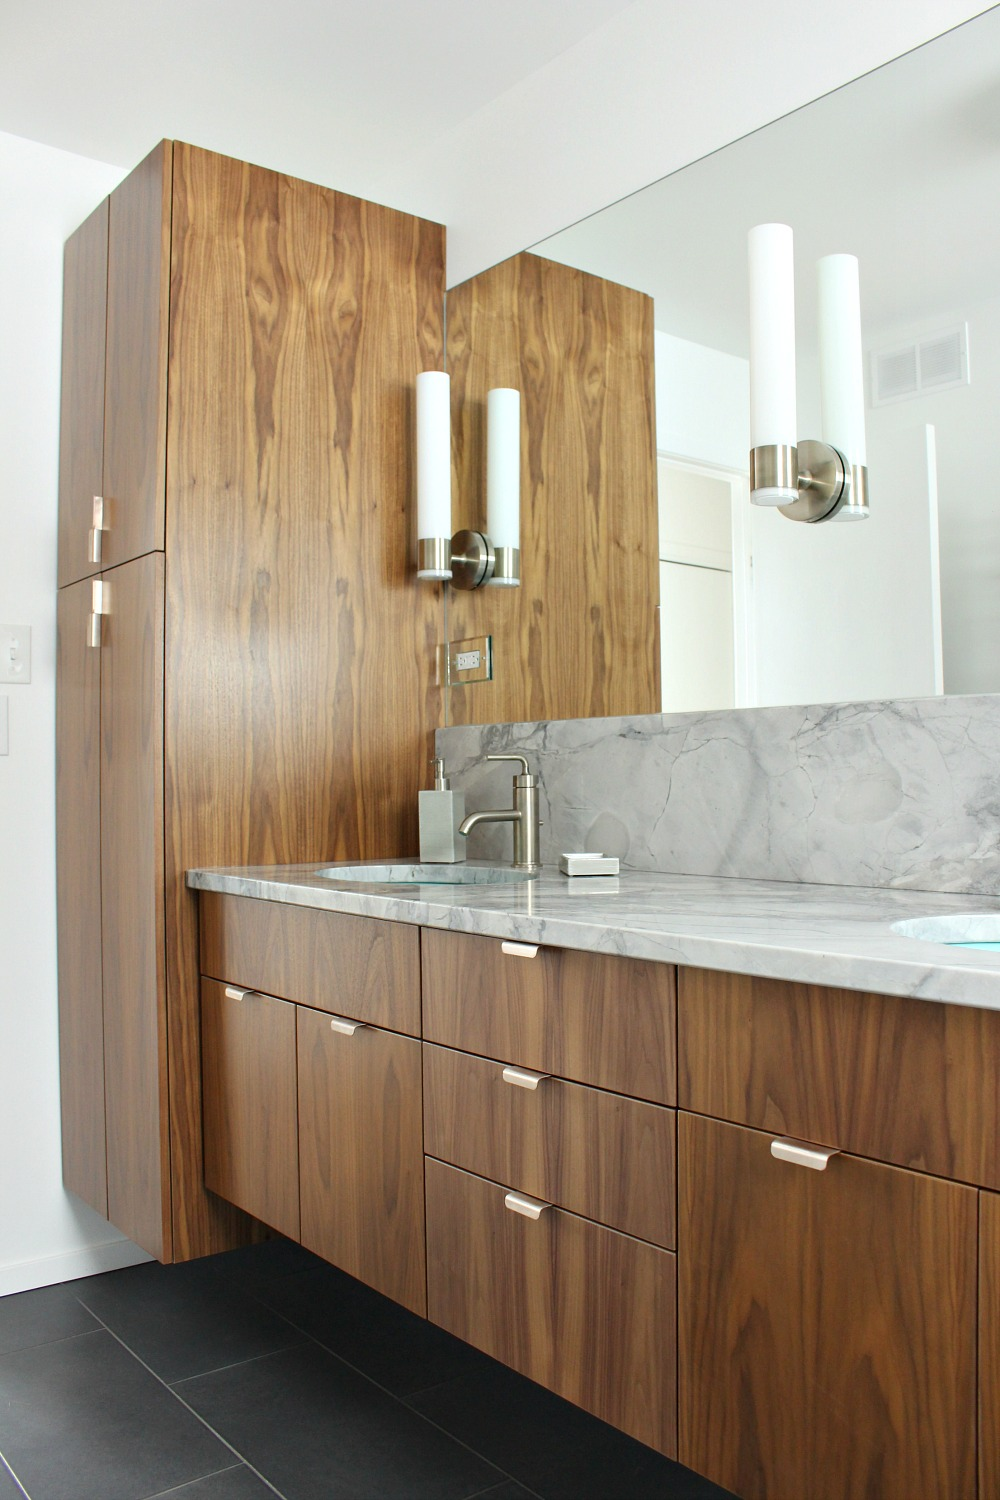 Floating Walnut Cabinetry in Bathroom Reno